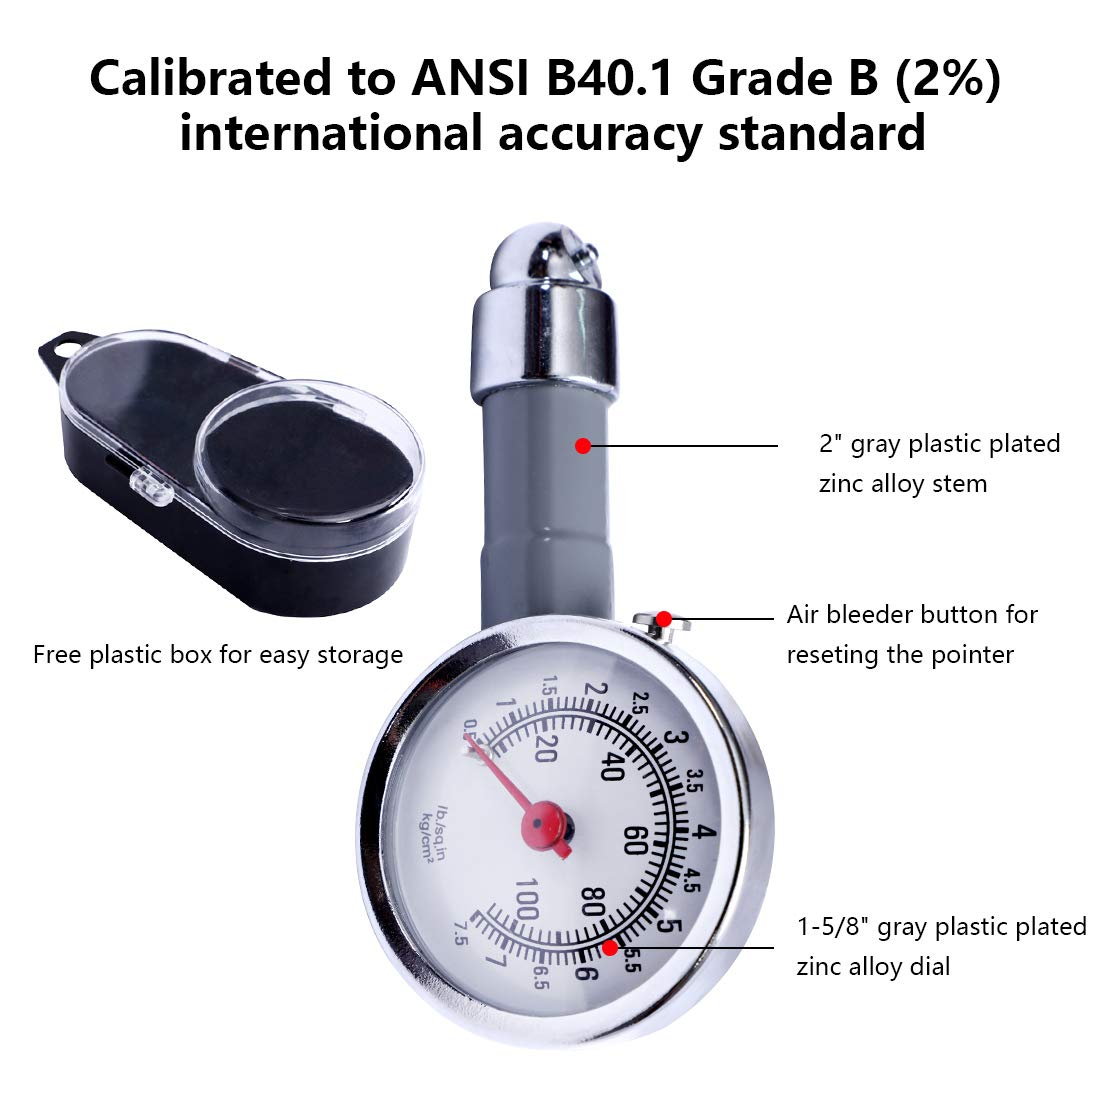 10-100PSI 0.5-7.5KG//c㎡ Accurate Mechanical Zinc Alloy Air Gage CZC AUTO Small Tire Pressure Gauge Single Chuck Dial Wheel Pressure Tester for Motorcycle Bike Car RV Bicycle SUV ATV